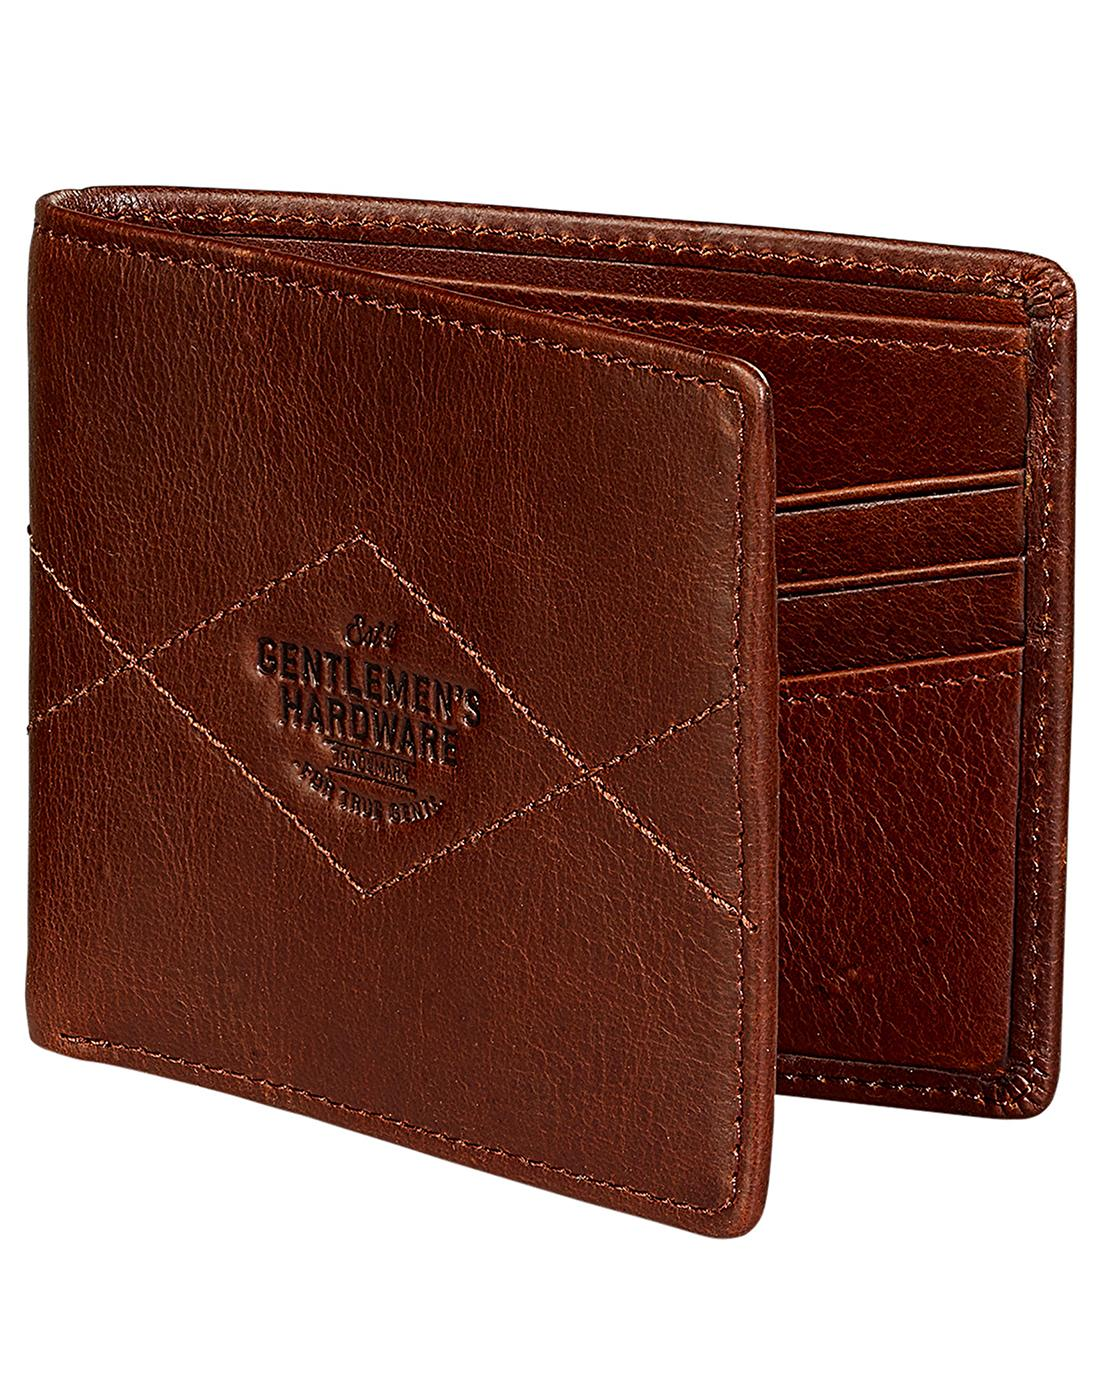 GENTLEMEN'S HARDWARE Retro Bi-Fold Leather Wallet